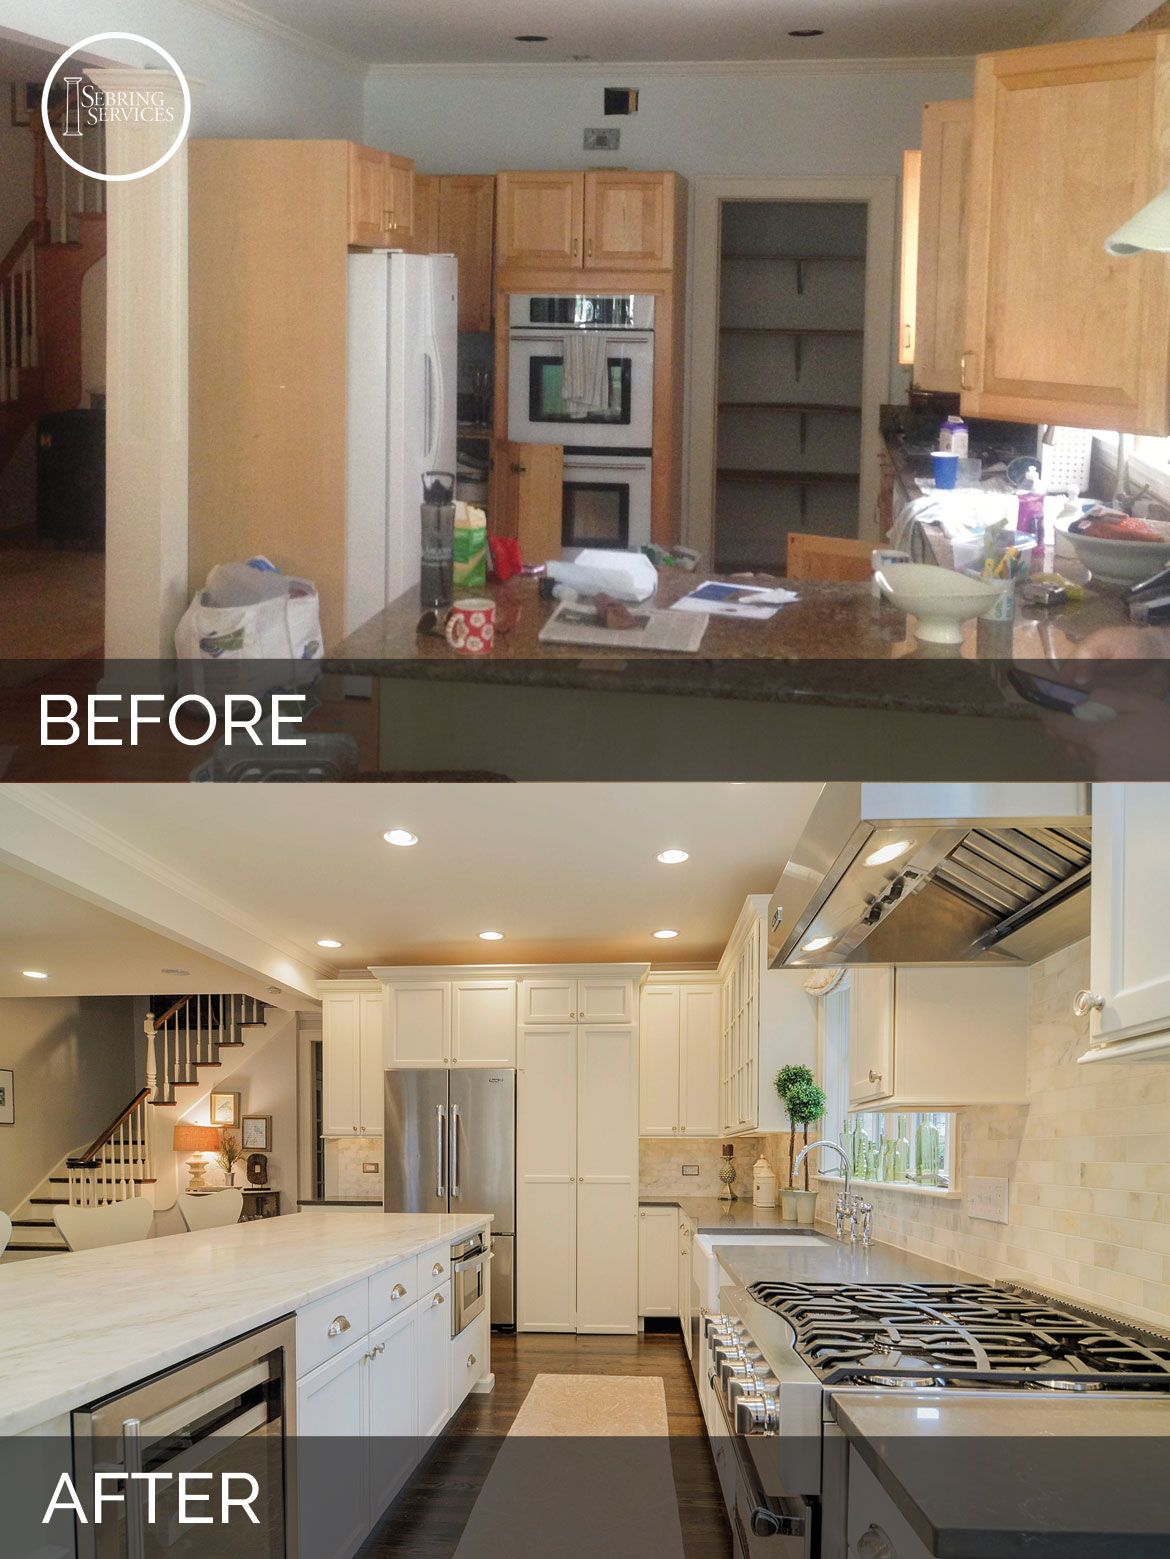 Ben ellen 39 s kitchen before after pictures kitchens for Renovations kitchen ideas